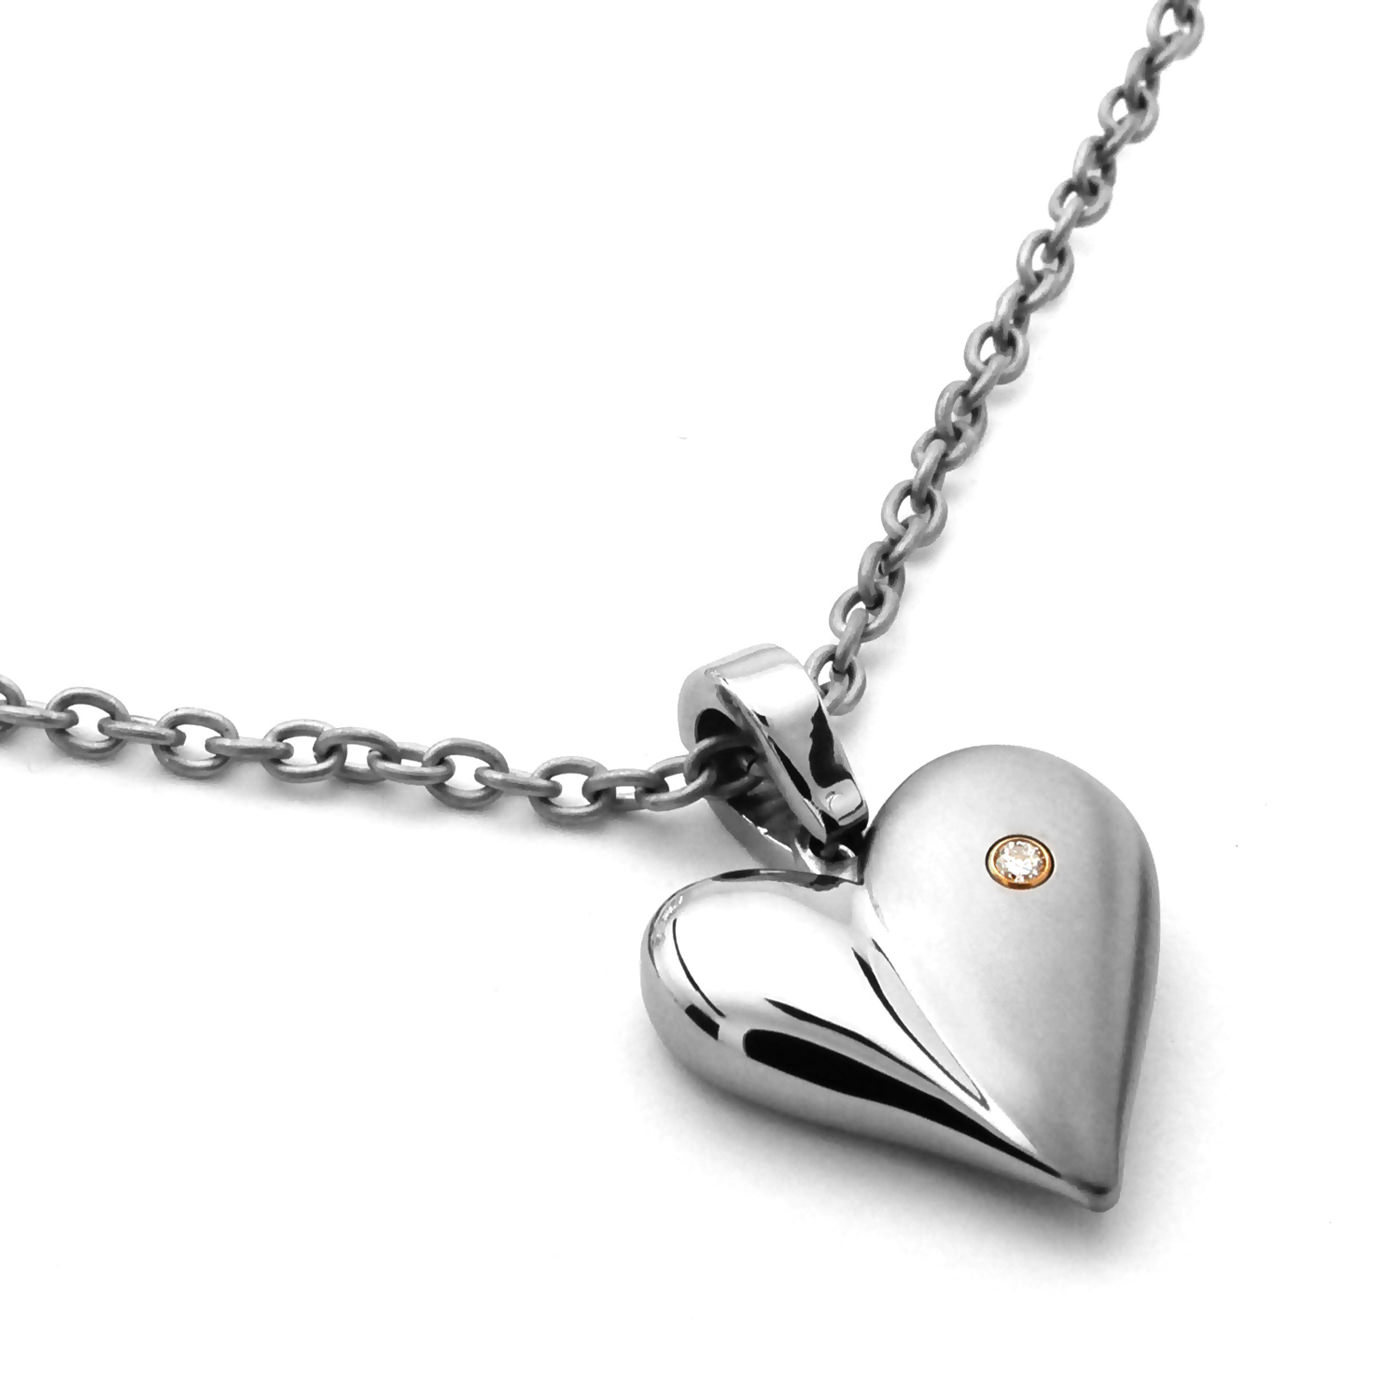 Edward Mirell La s Titanium & Diamond Heart Pendant Necklace